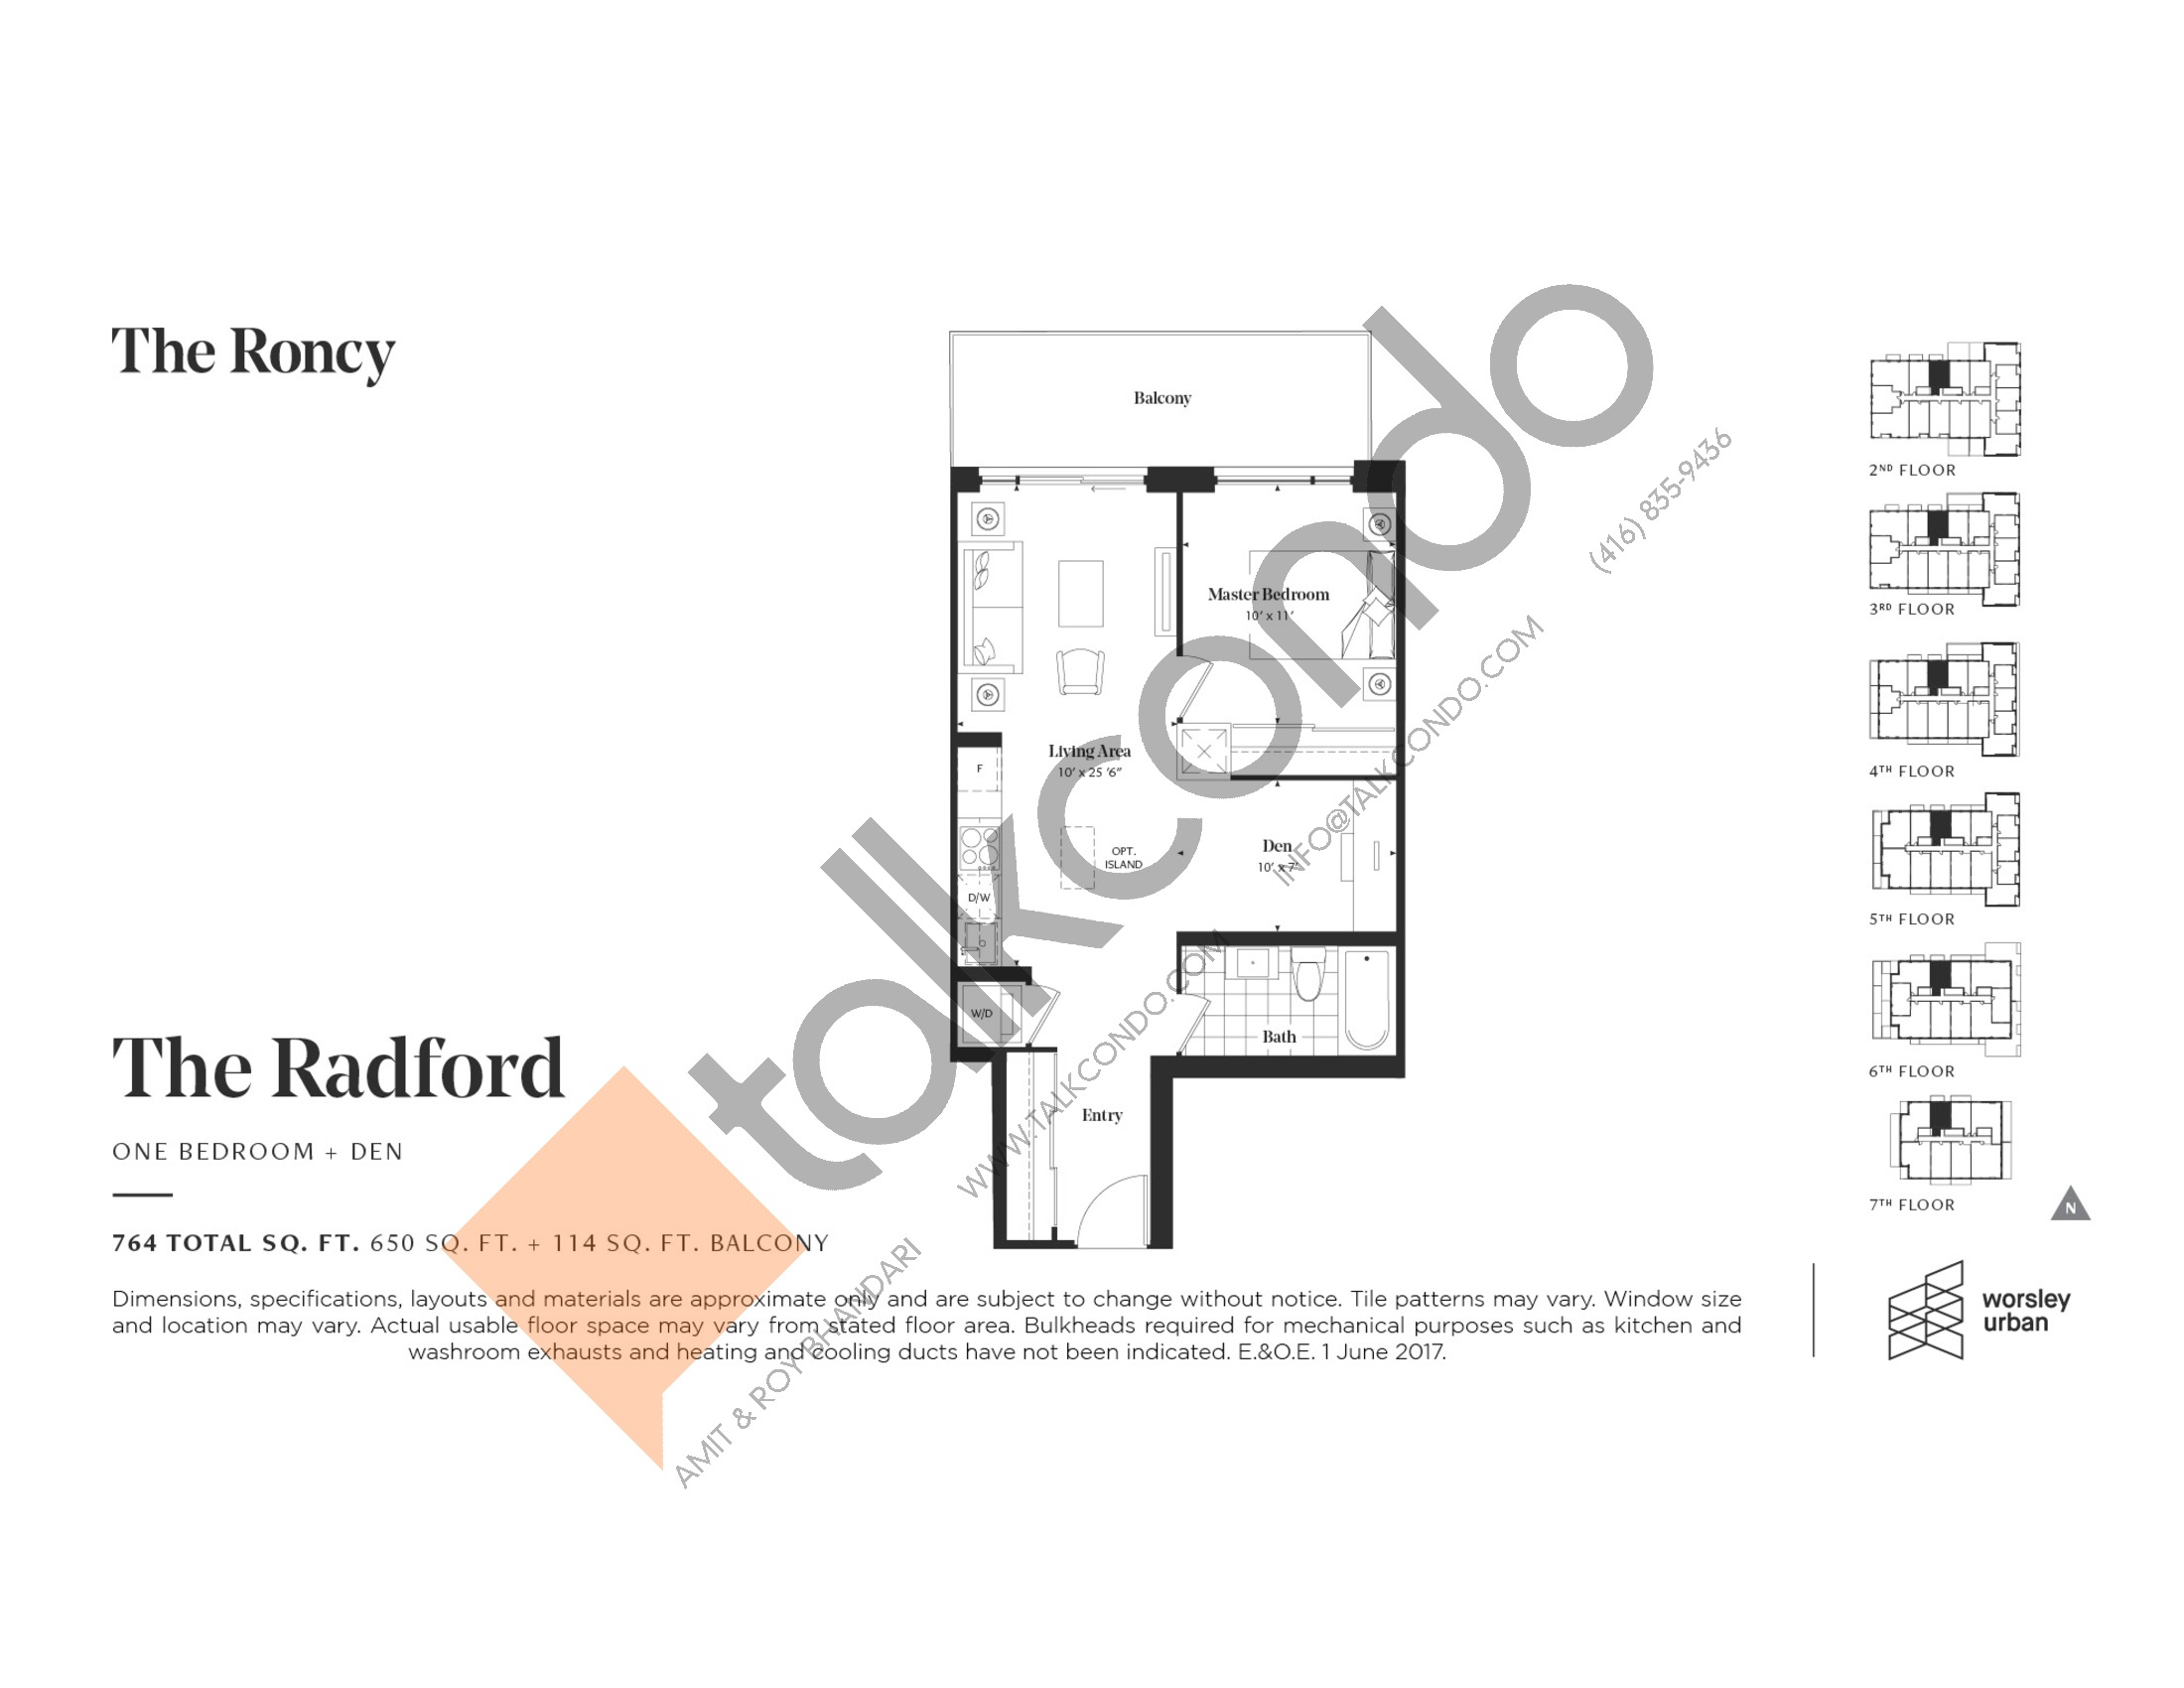 The Radford Floor Plan at The Roncy Condos - 650 sq.ft